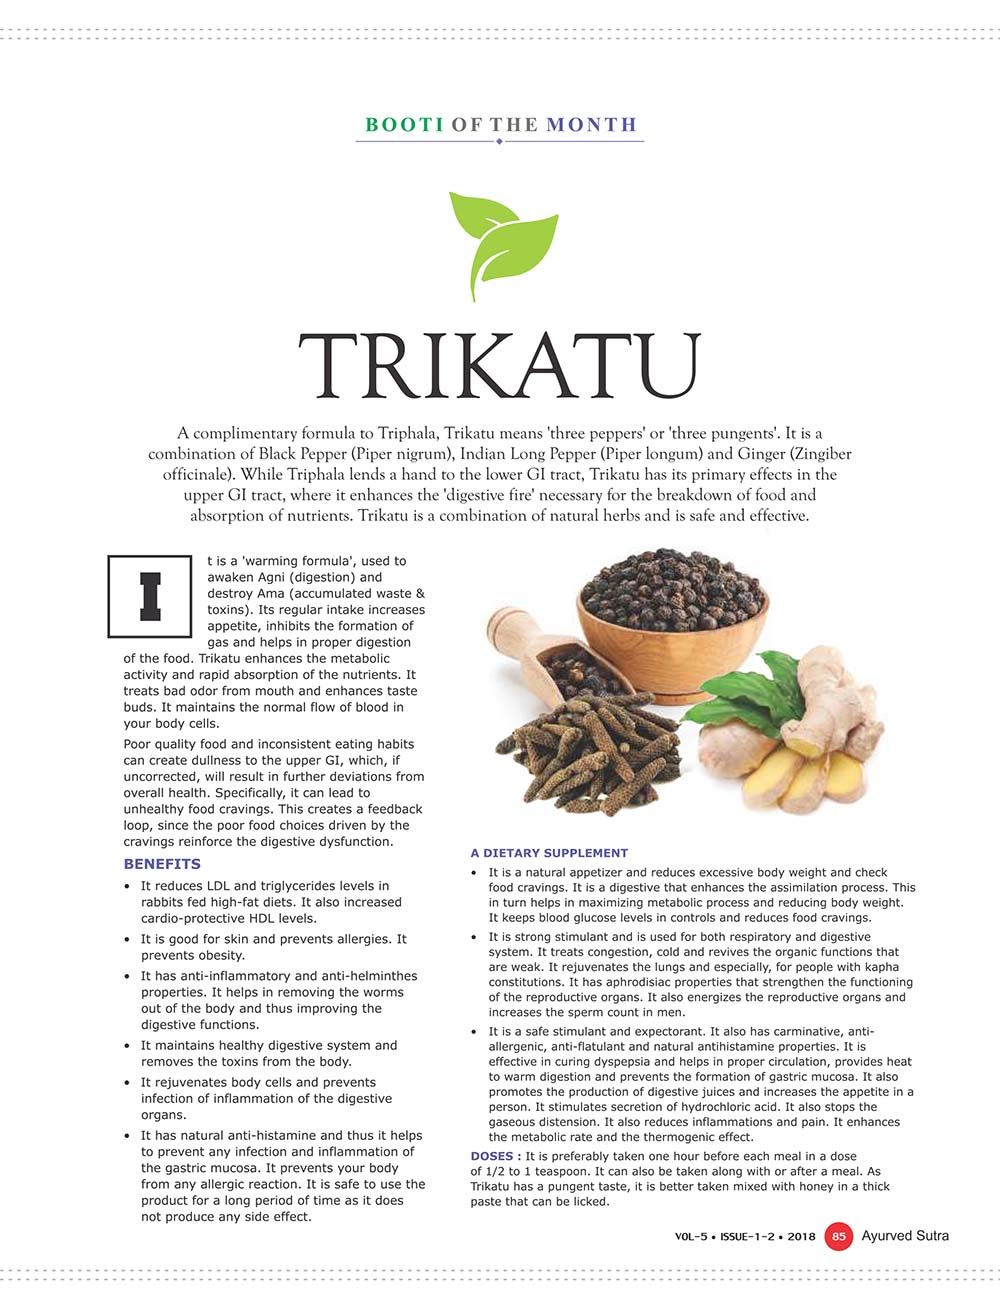 Ayurvedsutra Vol 05 issue 01 02 87 - Booti of the Month : Trikatu